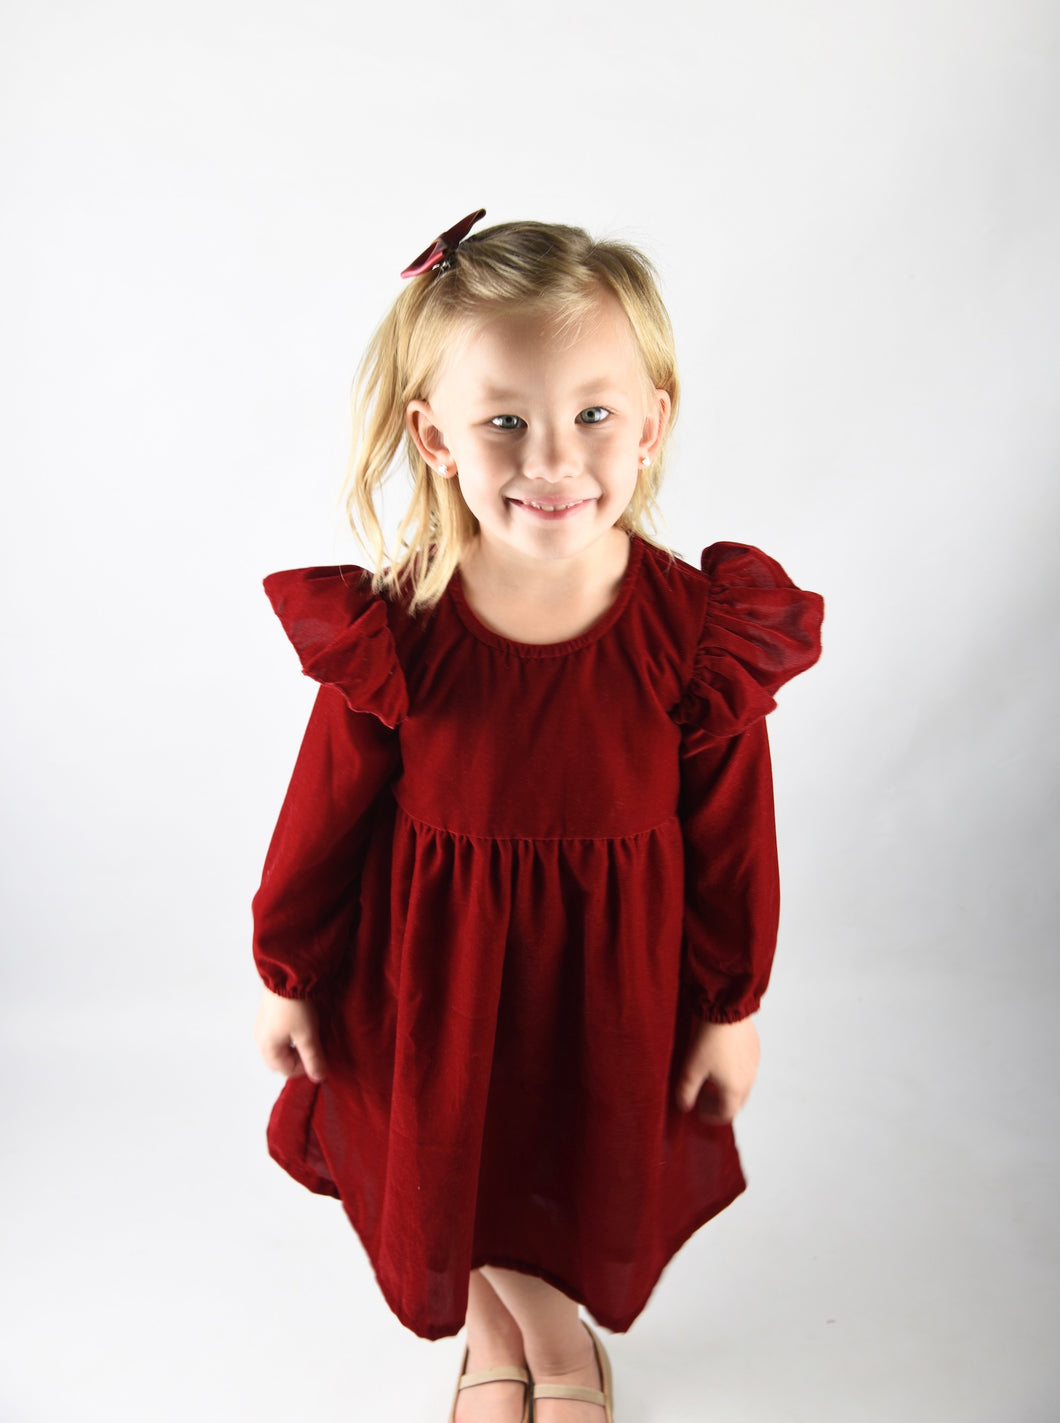 Christmas Red Velvet Dress - Kids Wholesale Boutique Clothing, Shirt-Dress - Girls Dresses, Yo Baby Wholesale - Yo Baby